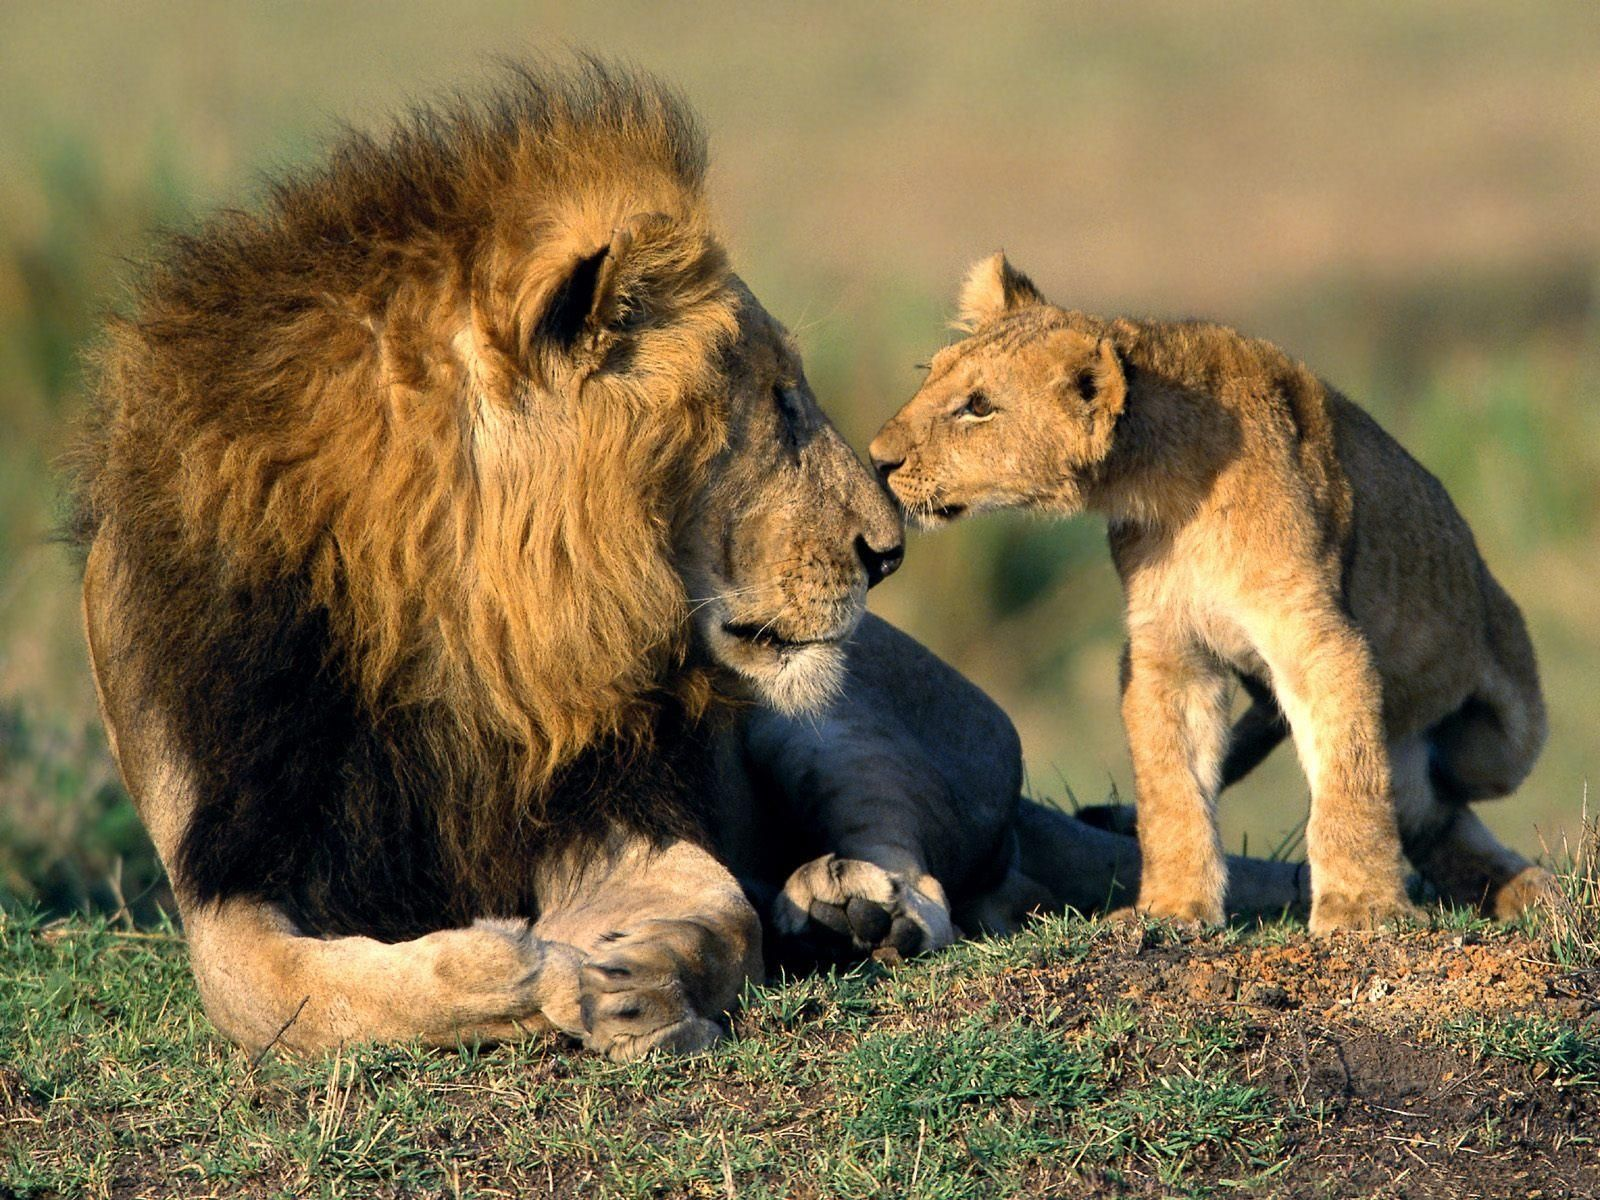 National Geographic African Lions Fighting Documentary